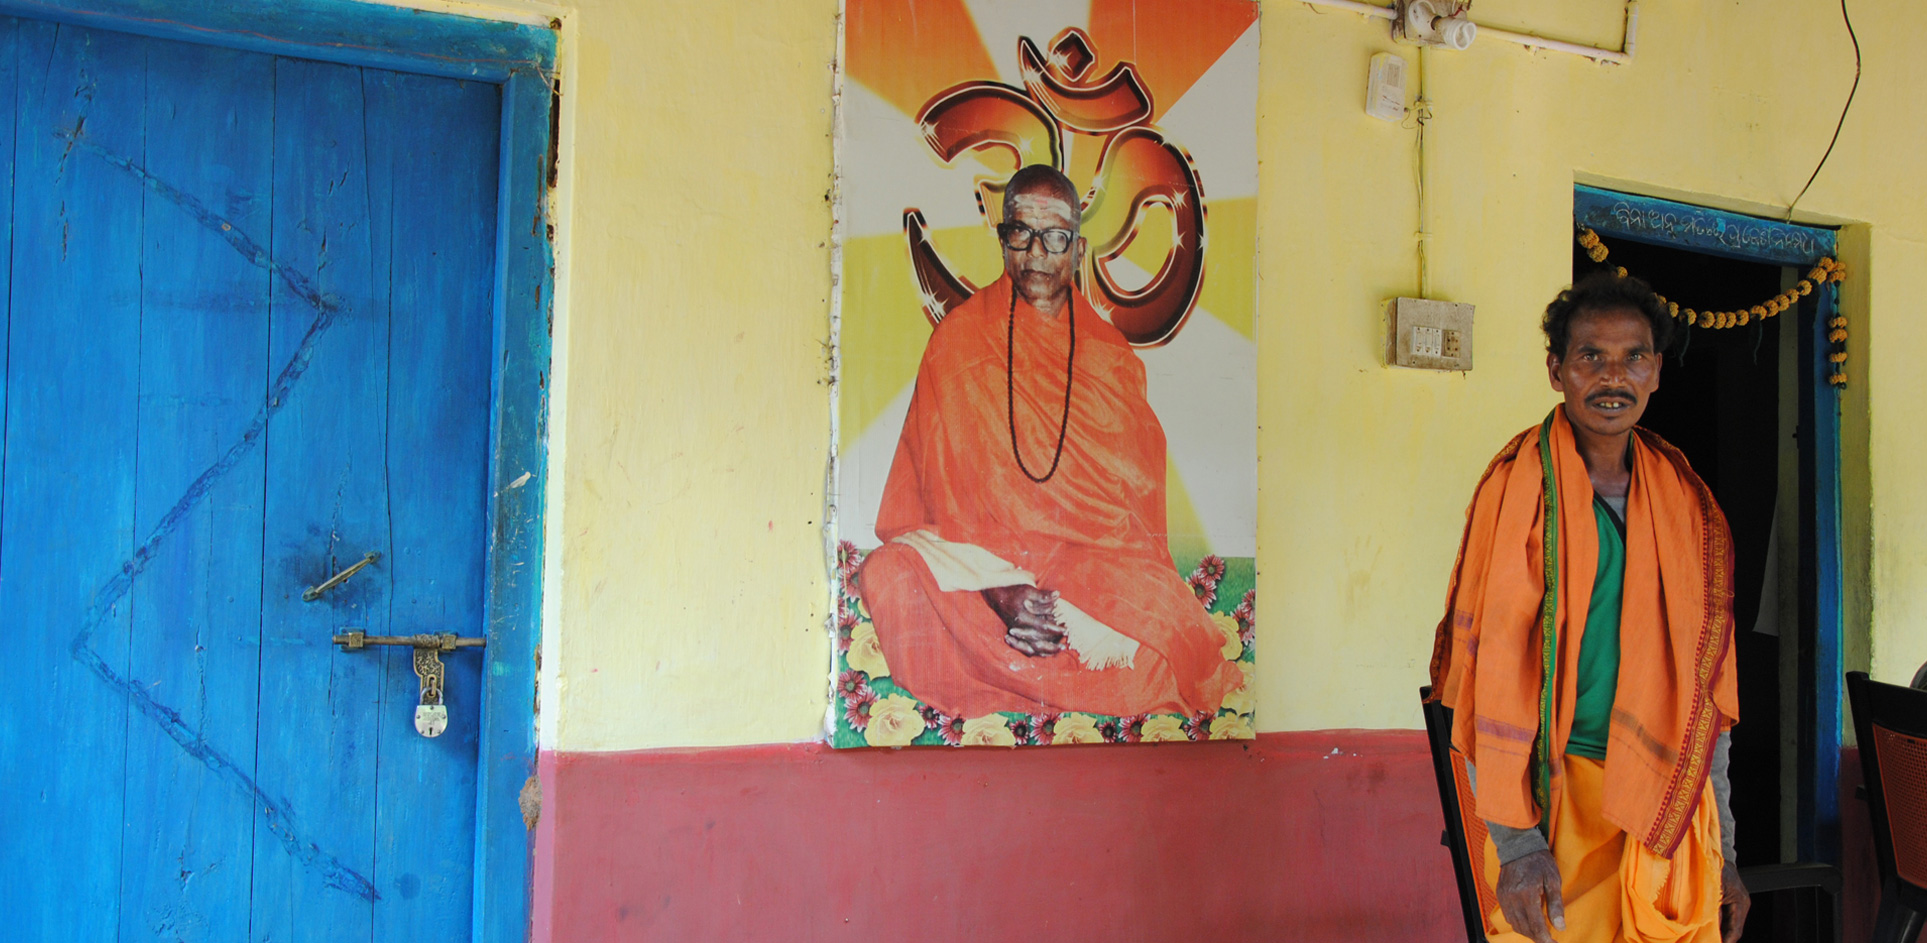 8 years after Swami Laxmanananda Saraswati's killing, Kandhamal is still a ticking time bomb